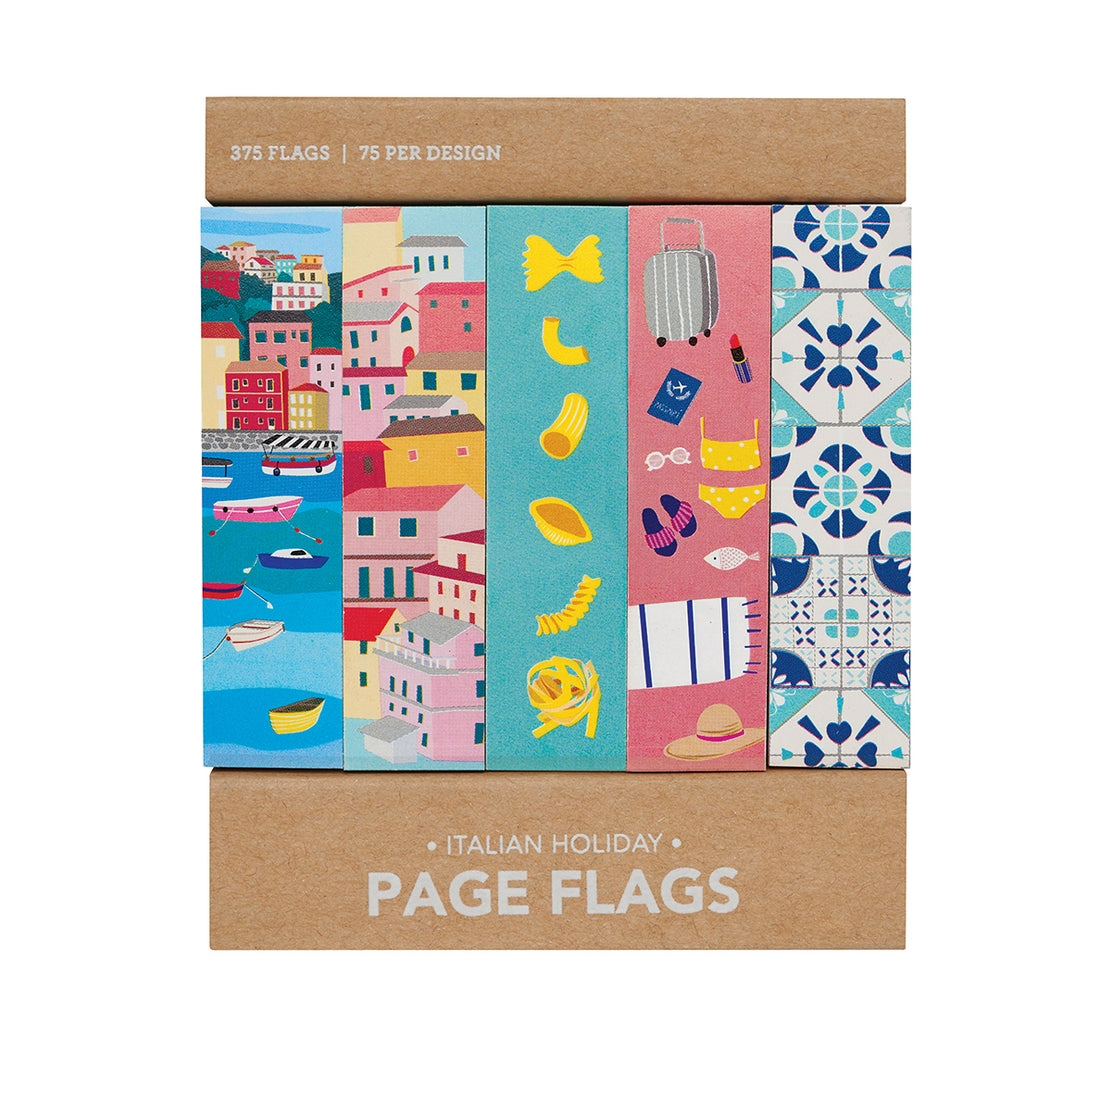 ITALIAN HOLIDAY PAGE FLAGS